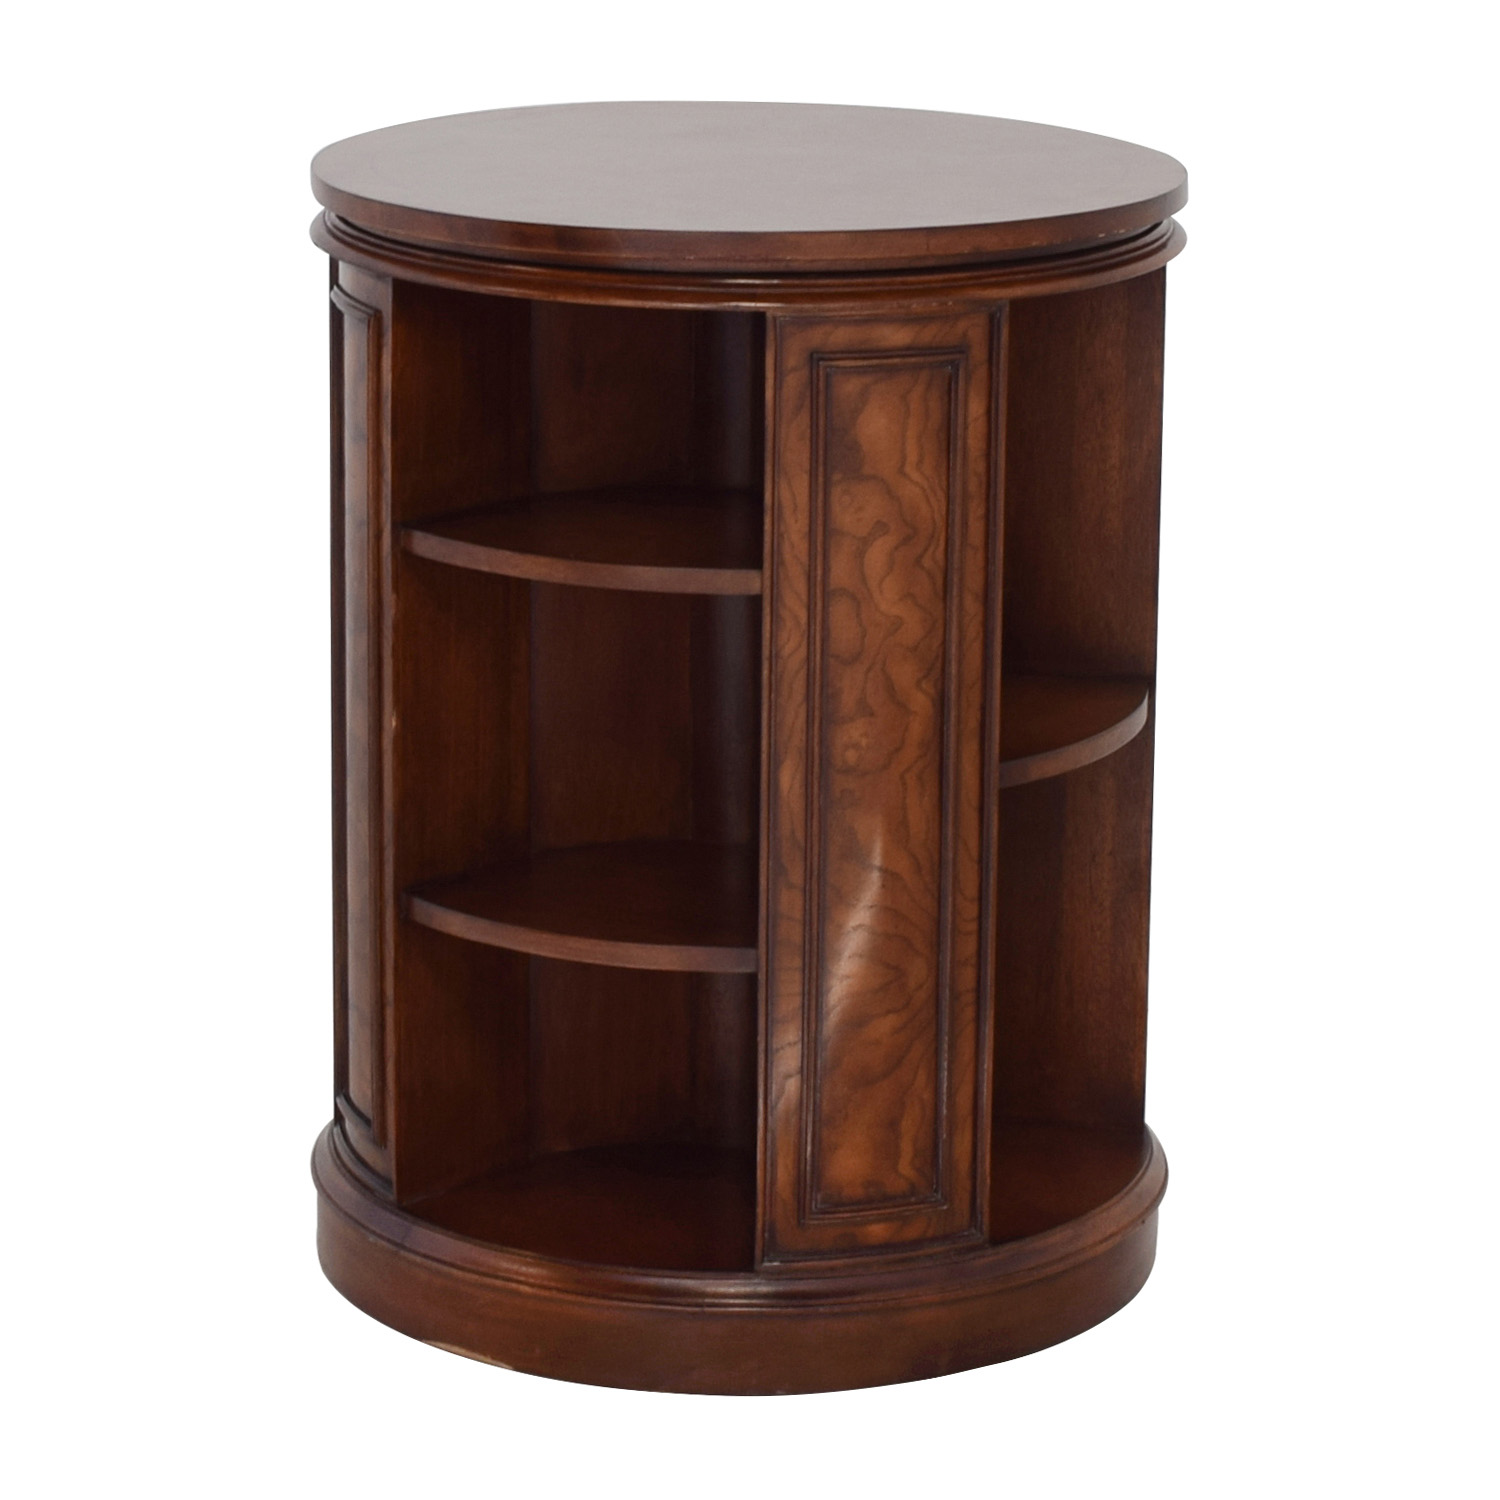 ... Safavieh Safavieh Rotating Side Table Bookcase second hand ... - 82% OFF - Safavieh Safavieh Rotating Side Table Bookcase / Tables